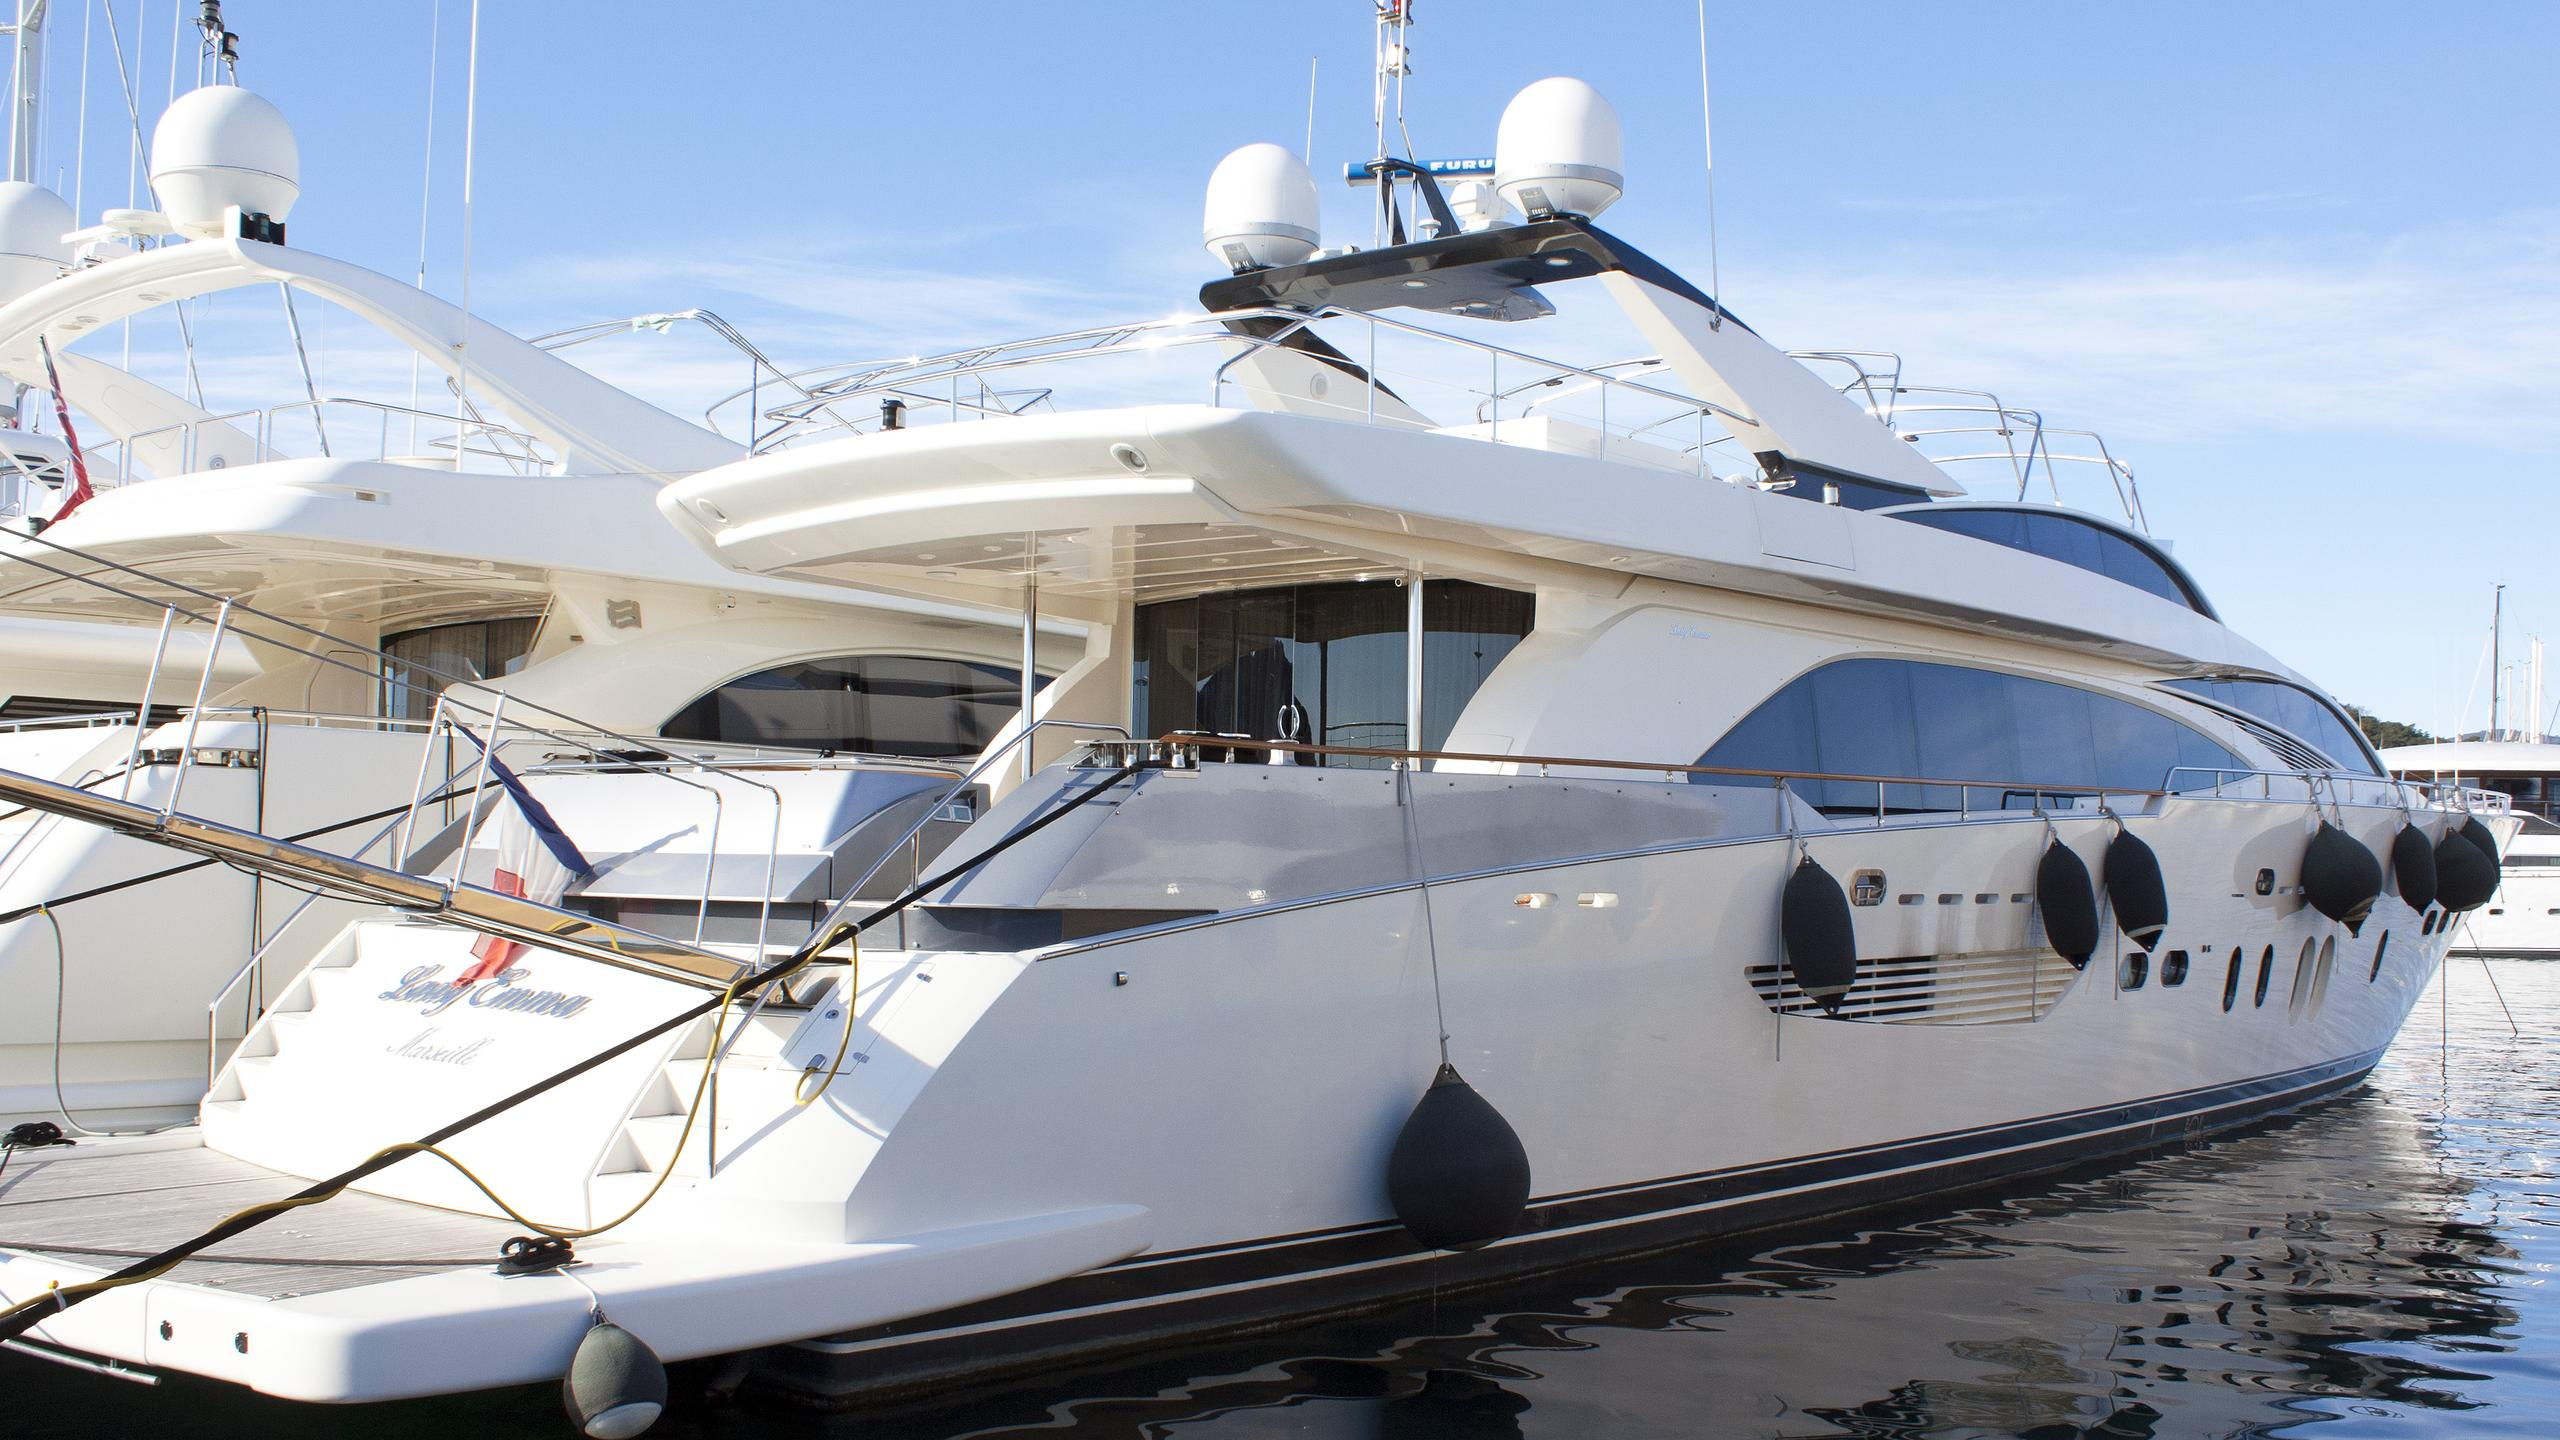 lady-emma-motor-yacht-couach-3300-Fly-2007-35m-half-profile